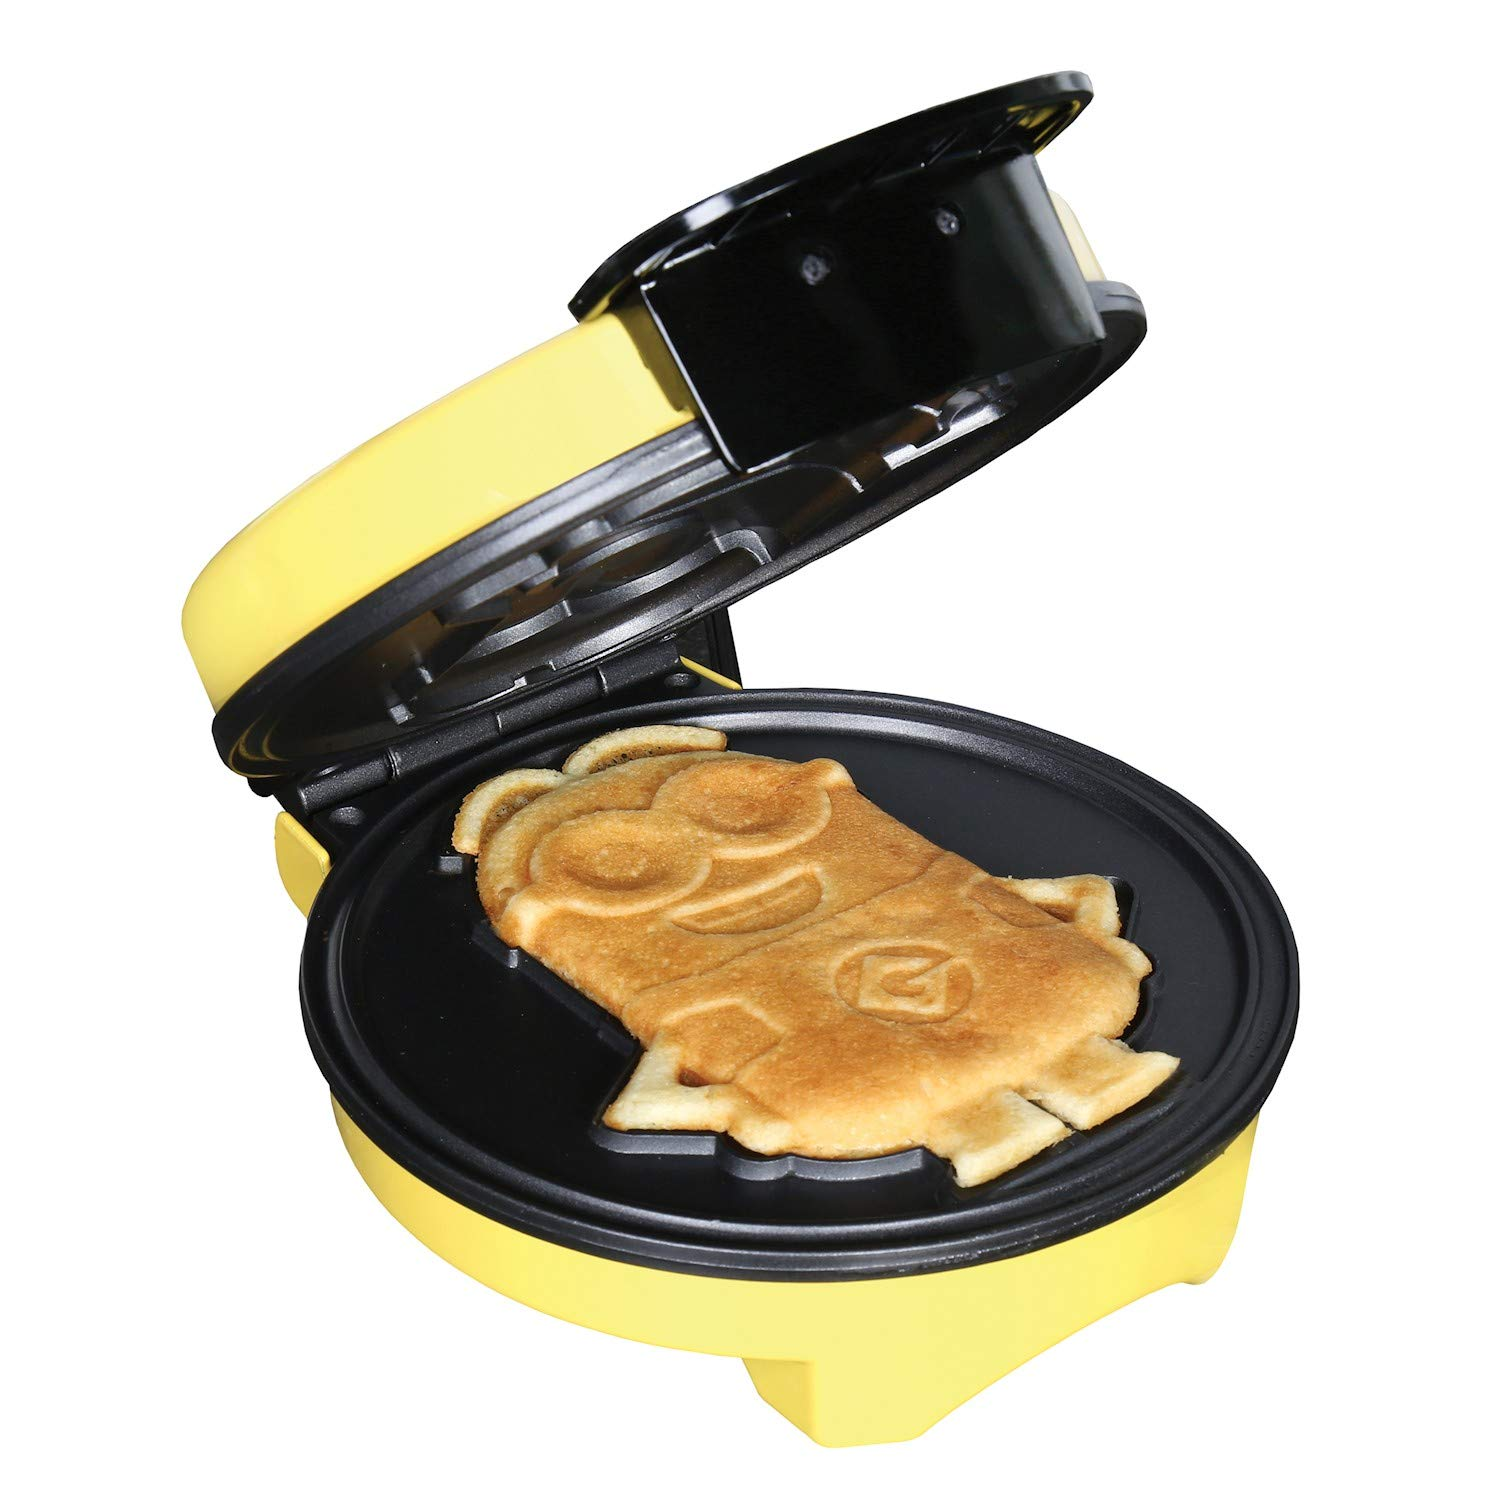 "Minions Waffle Maker - Electric Waffle Iron Kitchen Appliance -""Dave"" Yellow"